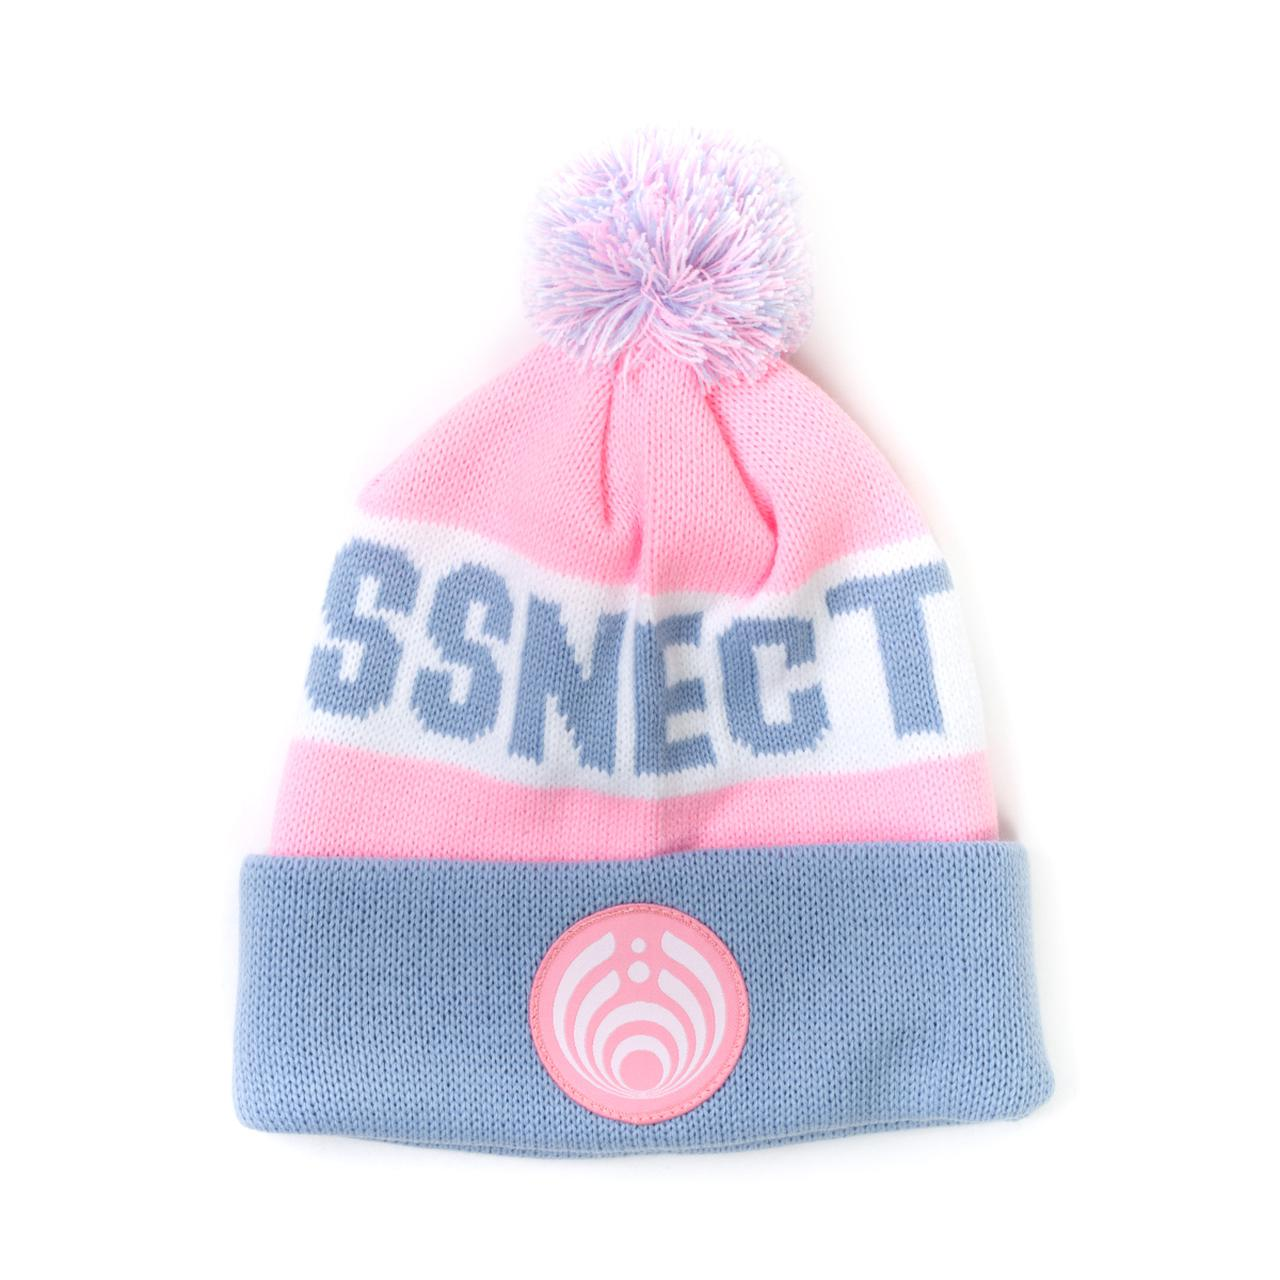 Bassnectar Pink and Gray Custom Patch Knit Beanie 5eac90d6a22